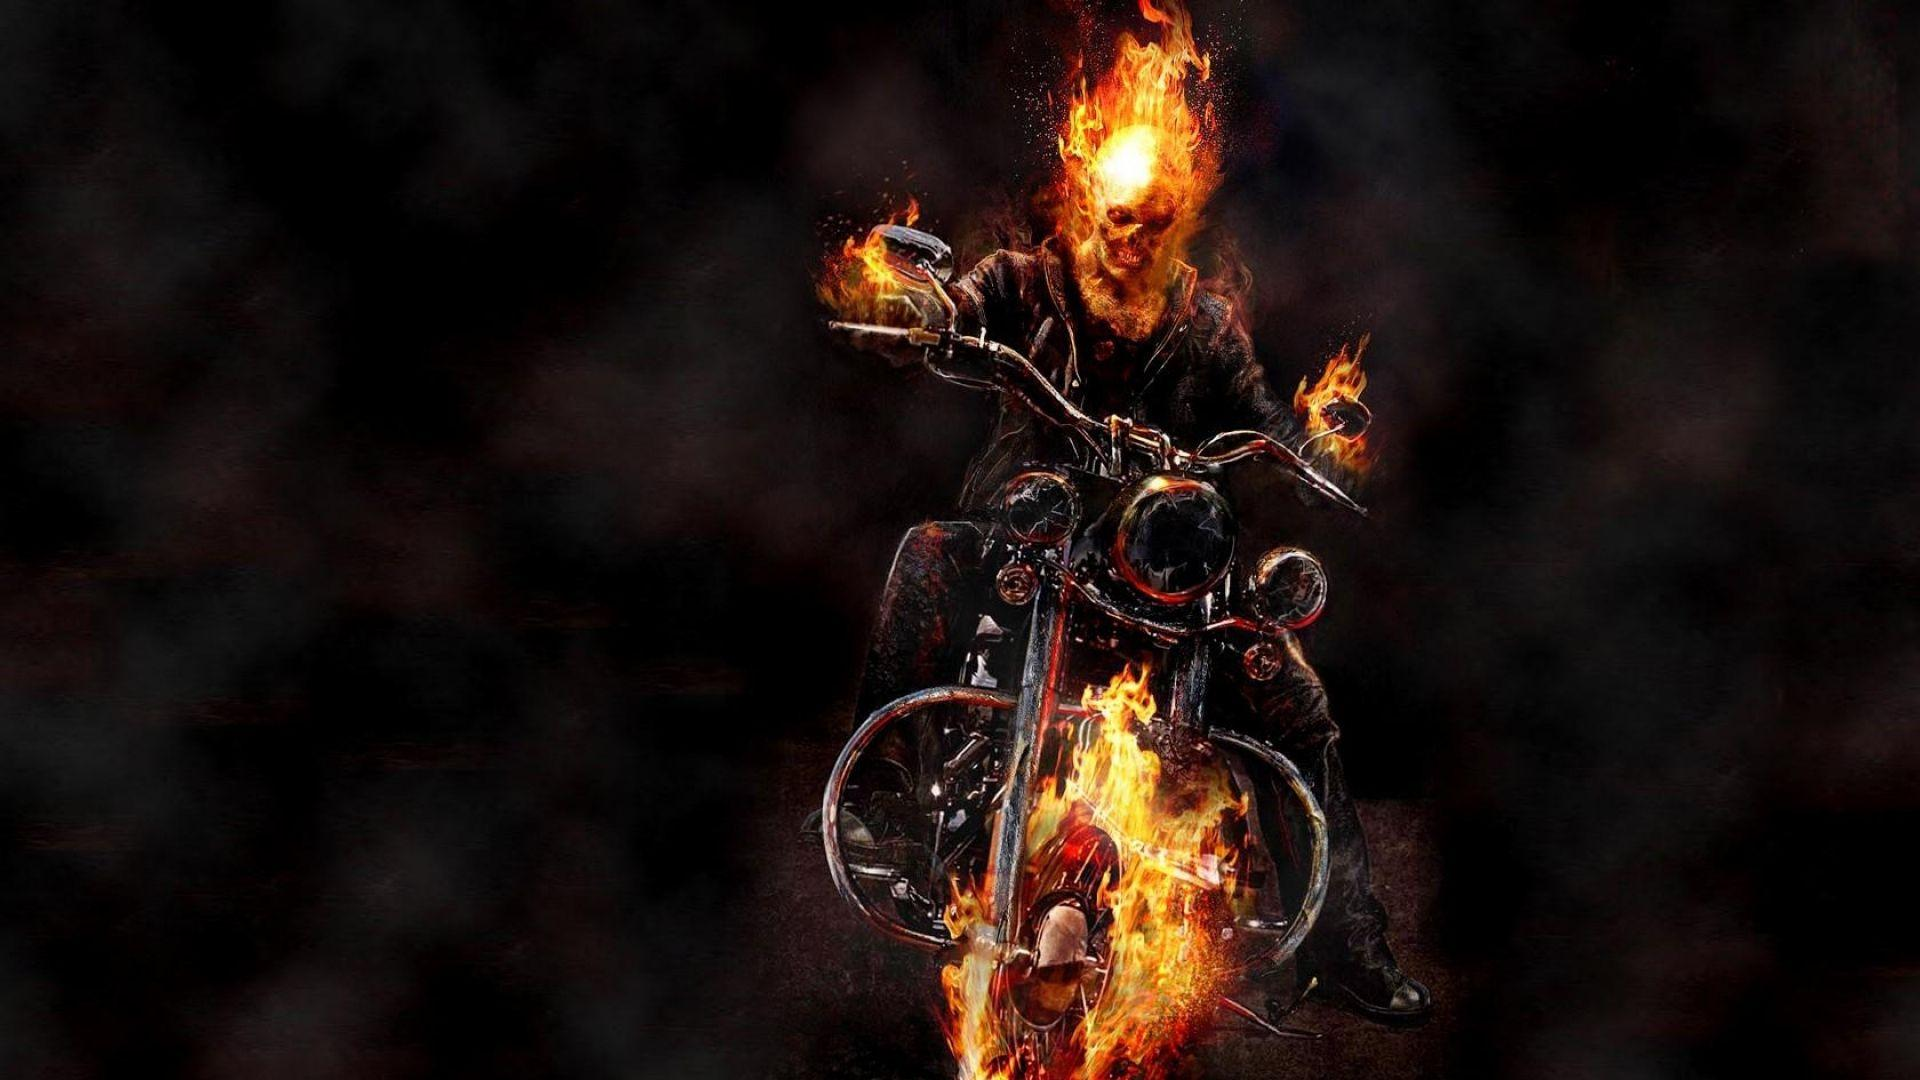 Motorcycle Ghost Rider Image HD Wallpapers